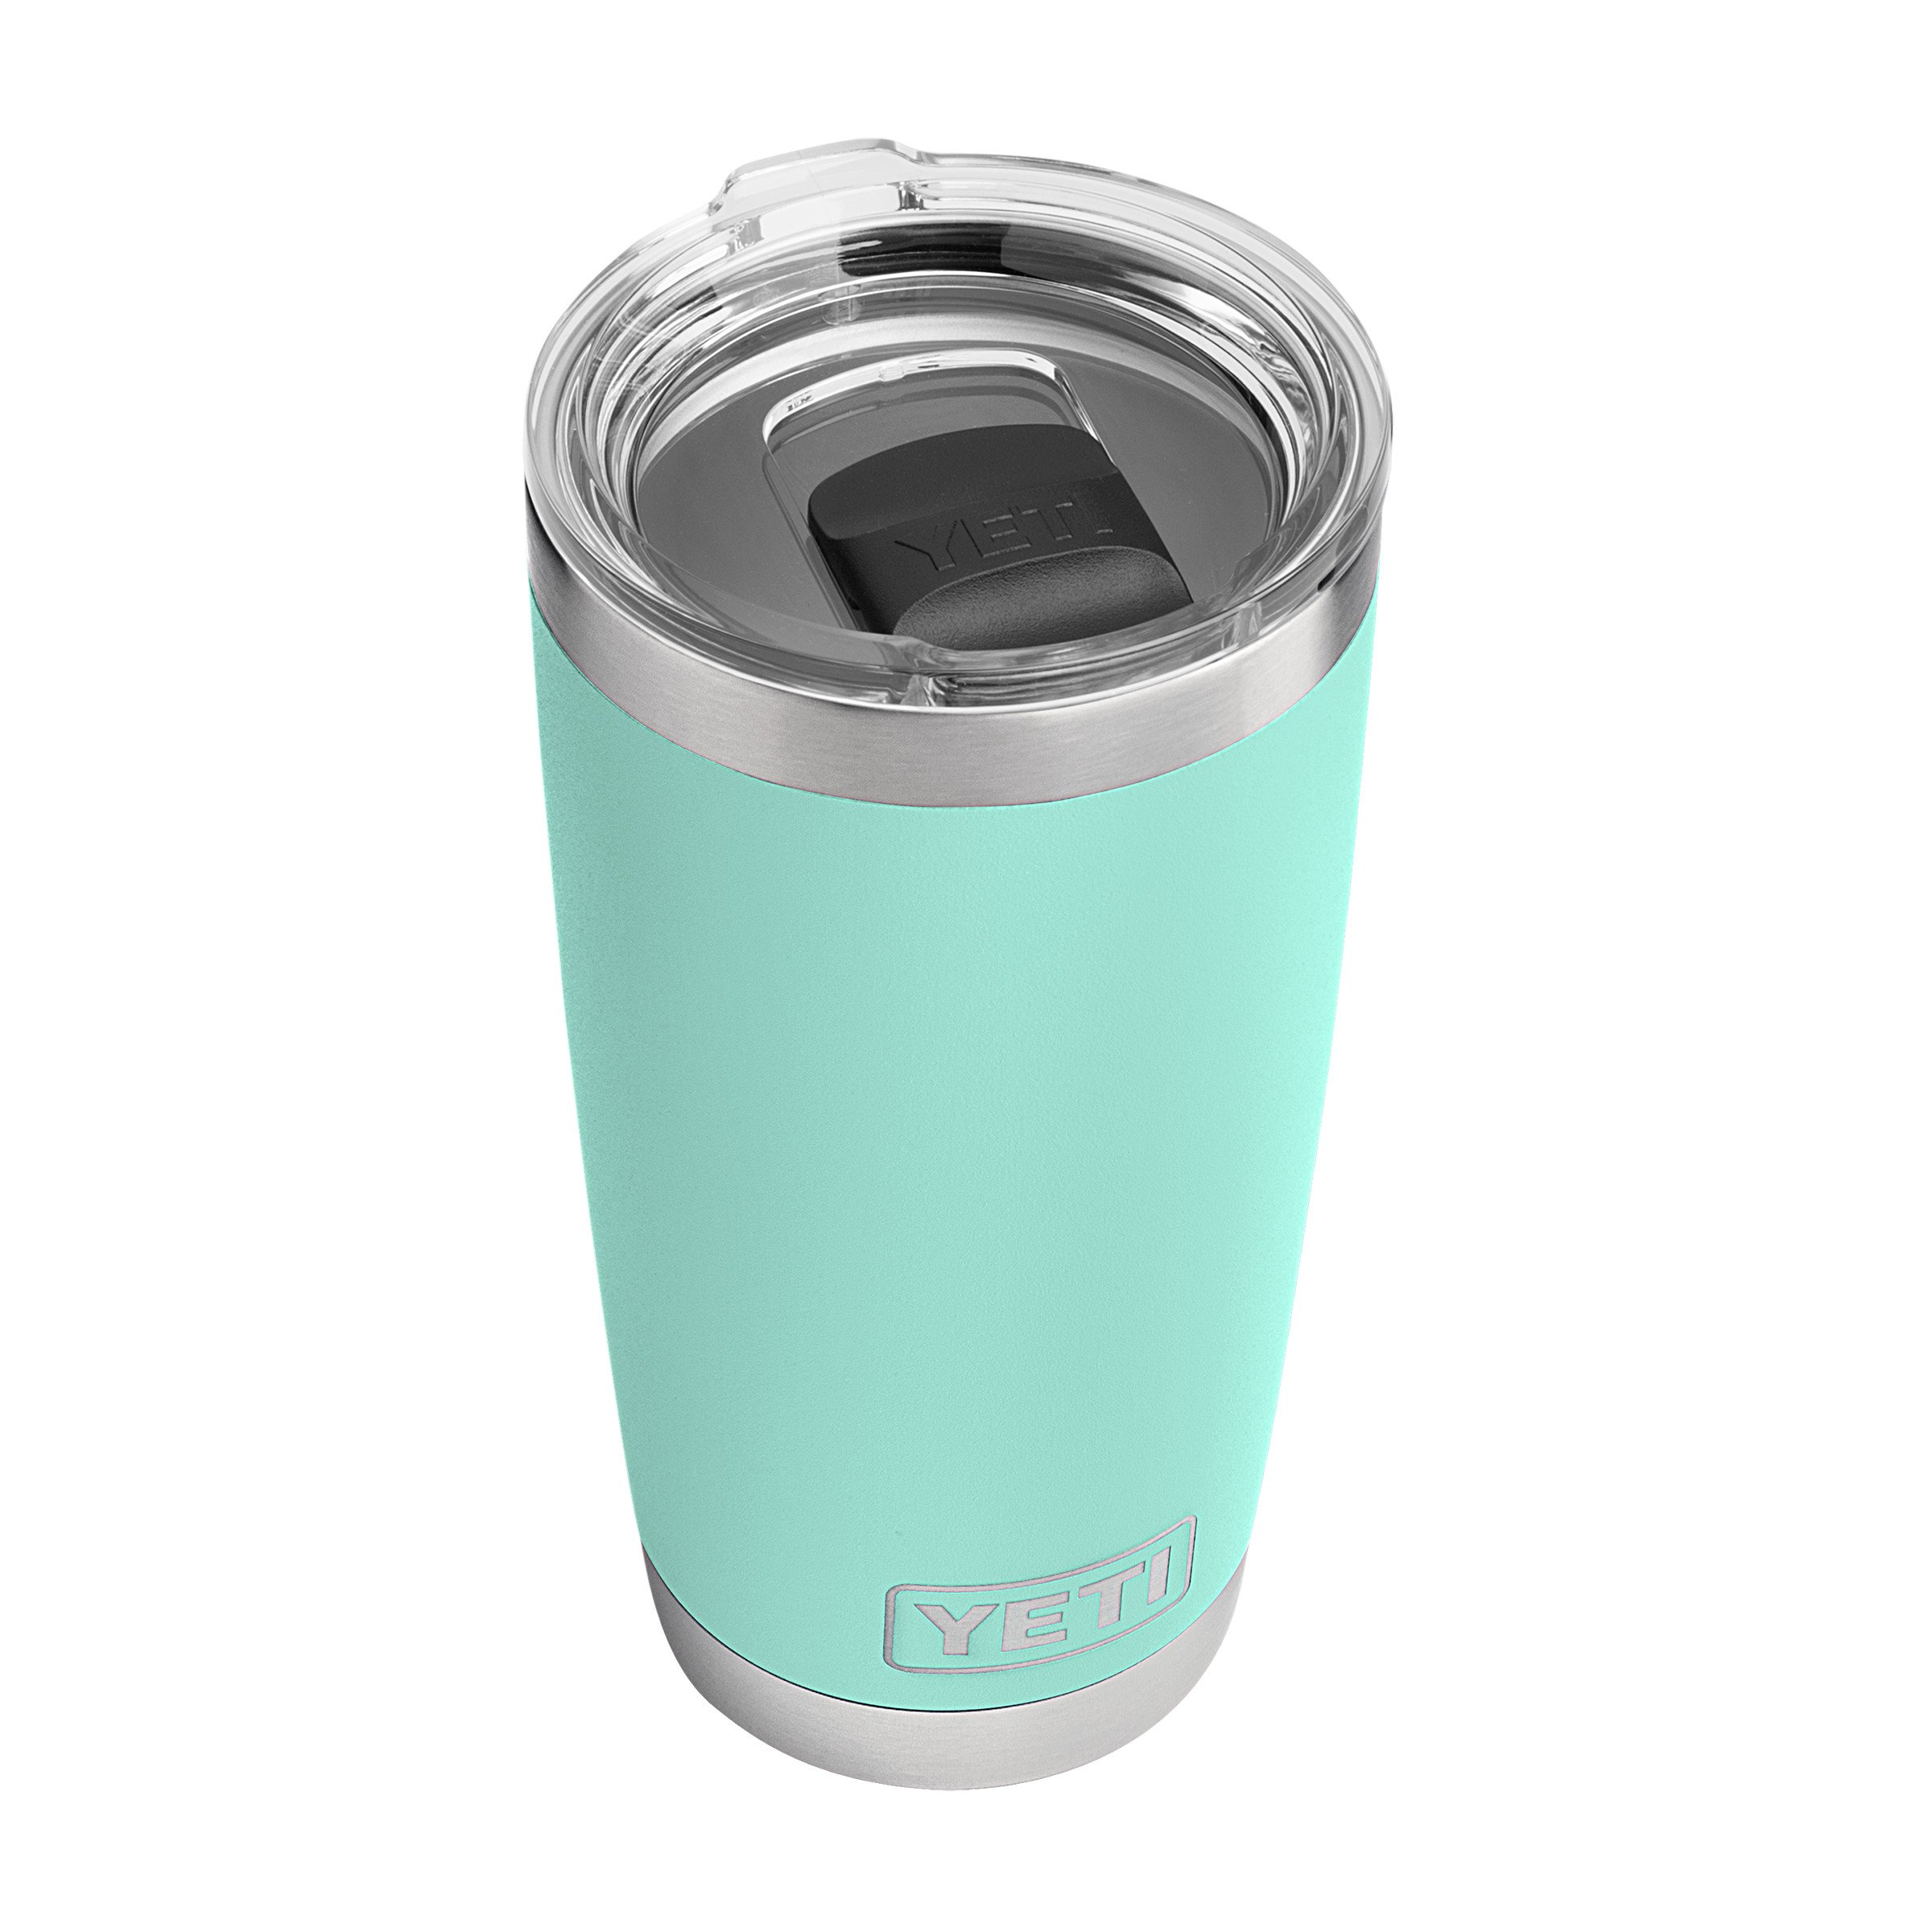 YETI Rambler 20 oz Stainless Steel Vacuum Insulated Tumbler w/ MagSlider Lid, Seafoam by YETI